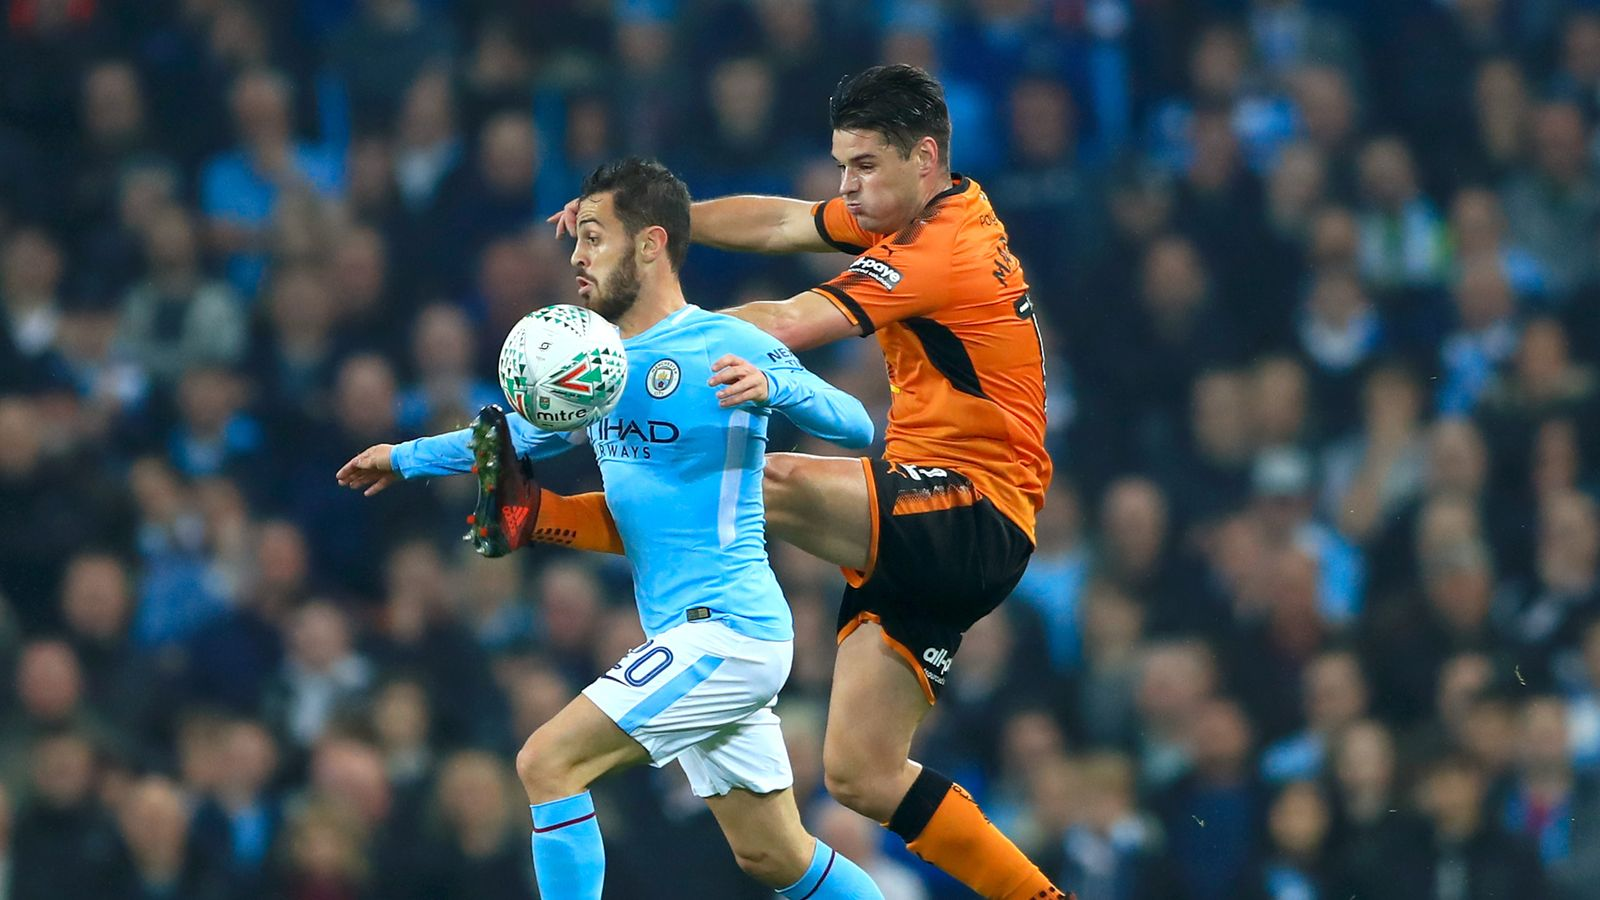 wolves vs man city - 1096×616